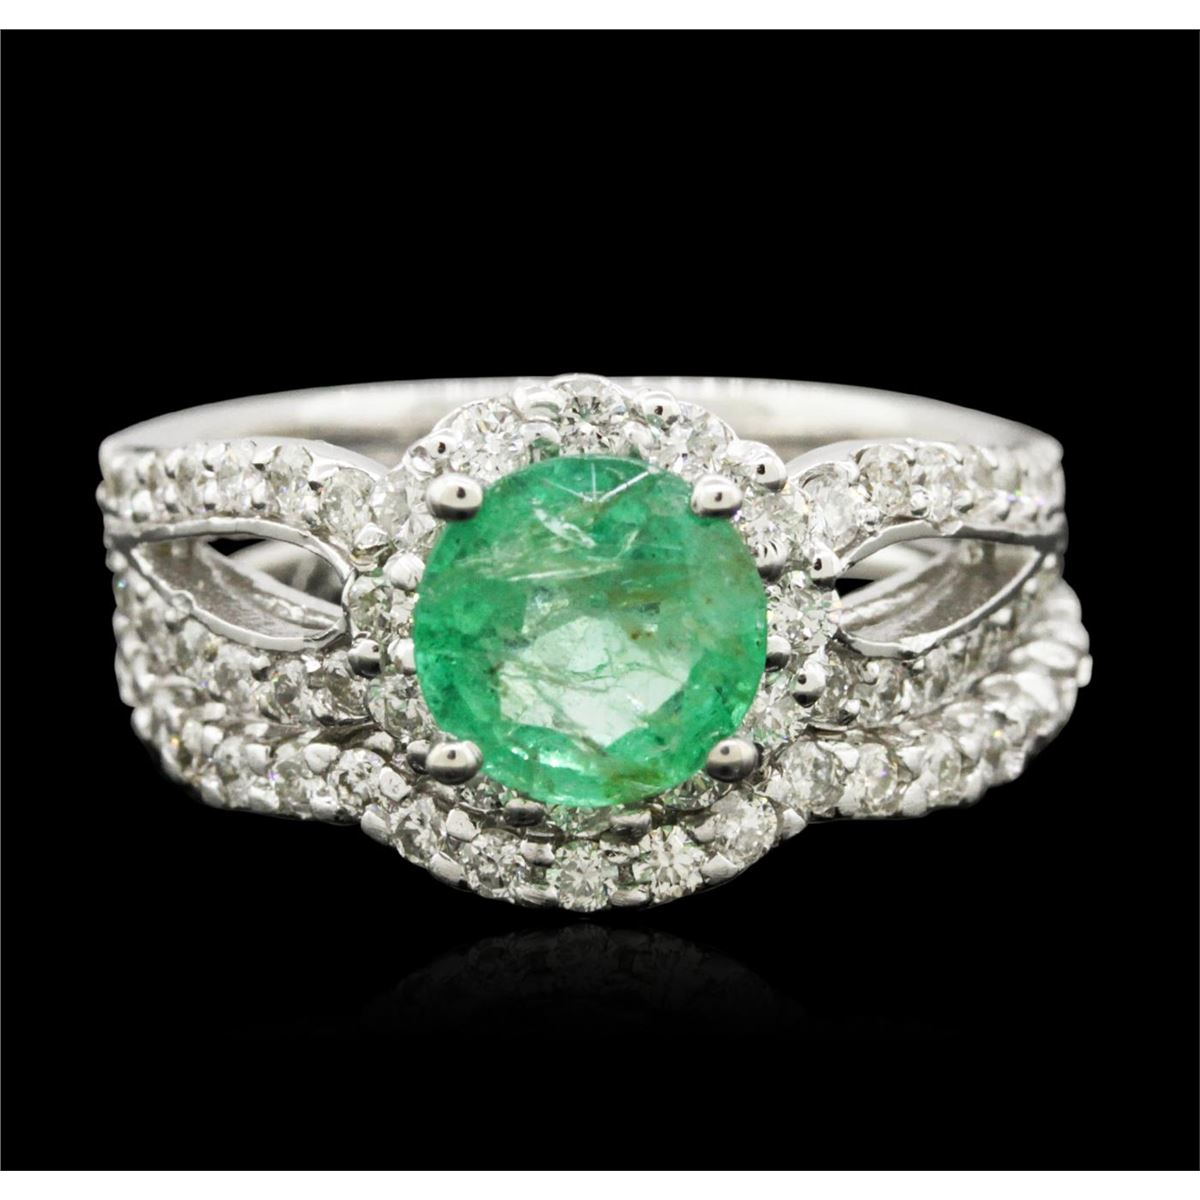 Jewelry Auction  Two Stunning Emerald Rings  Seized